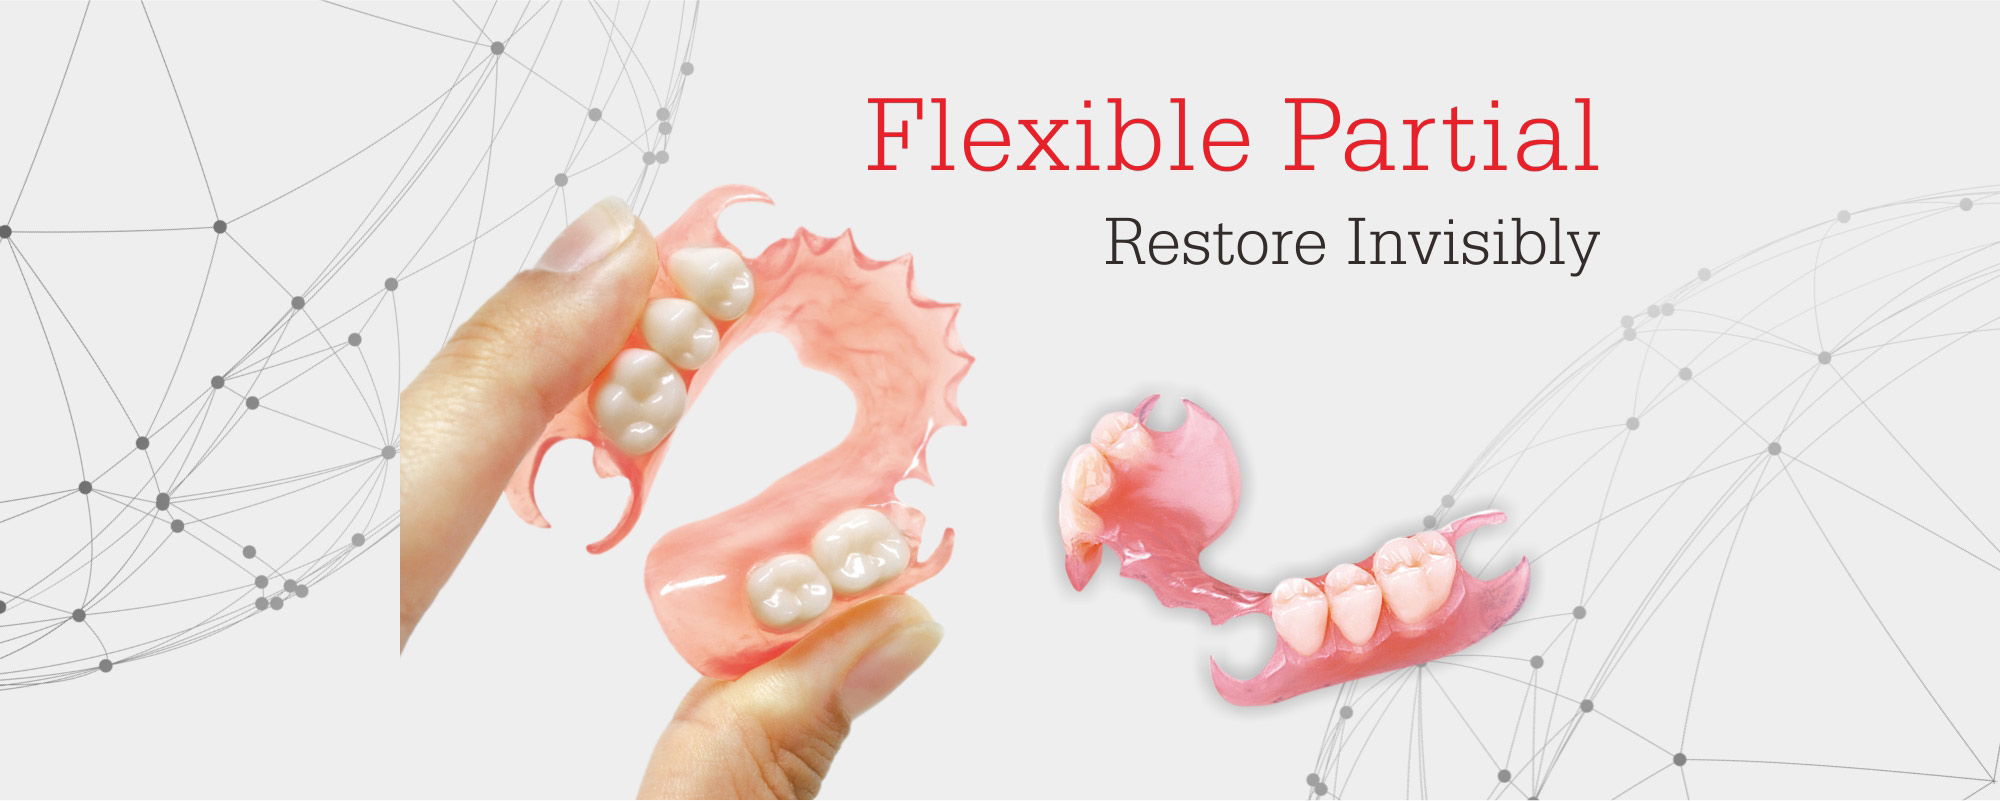 Flexible Partial,Restore Invisibly